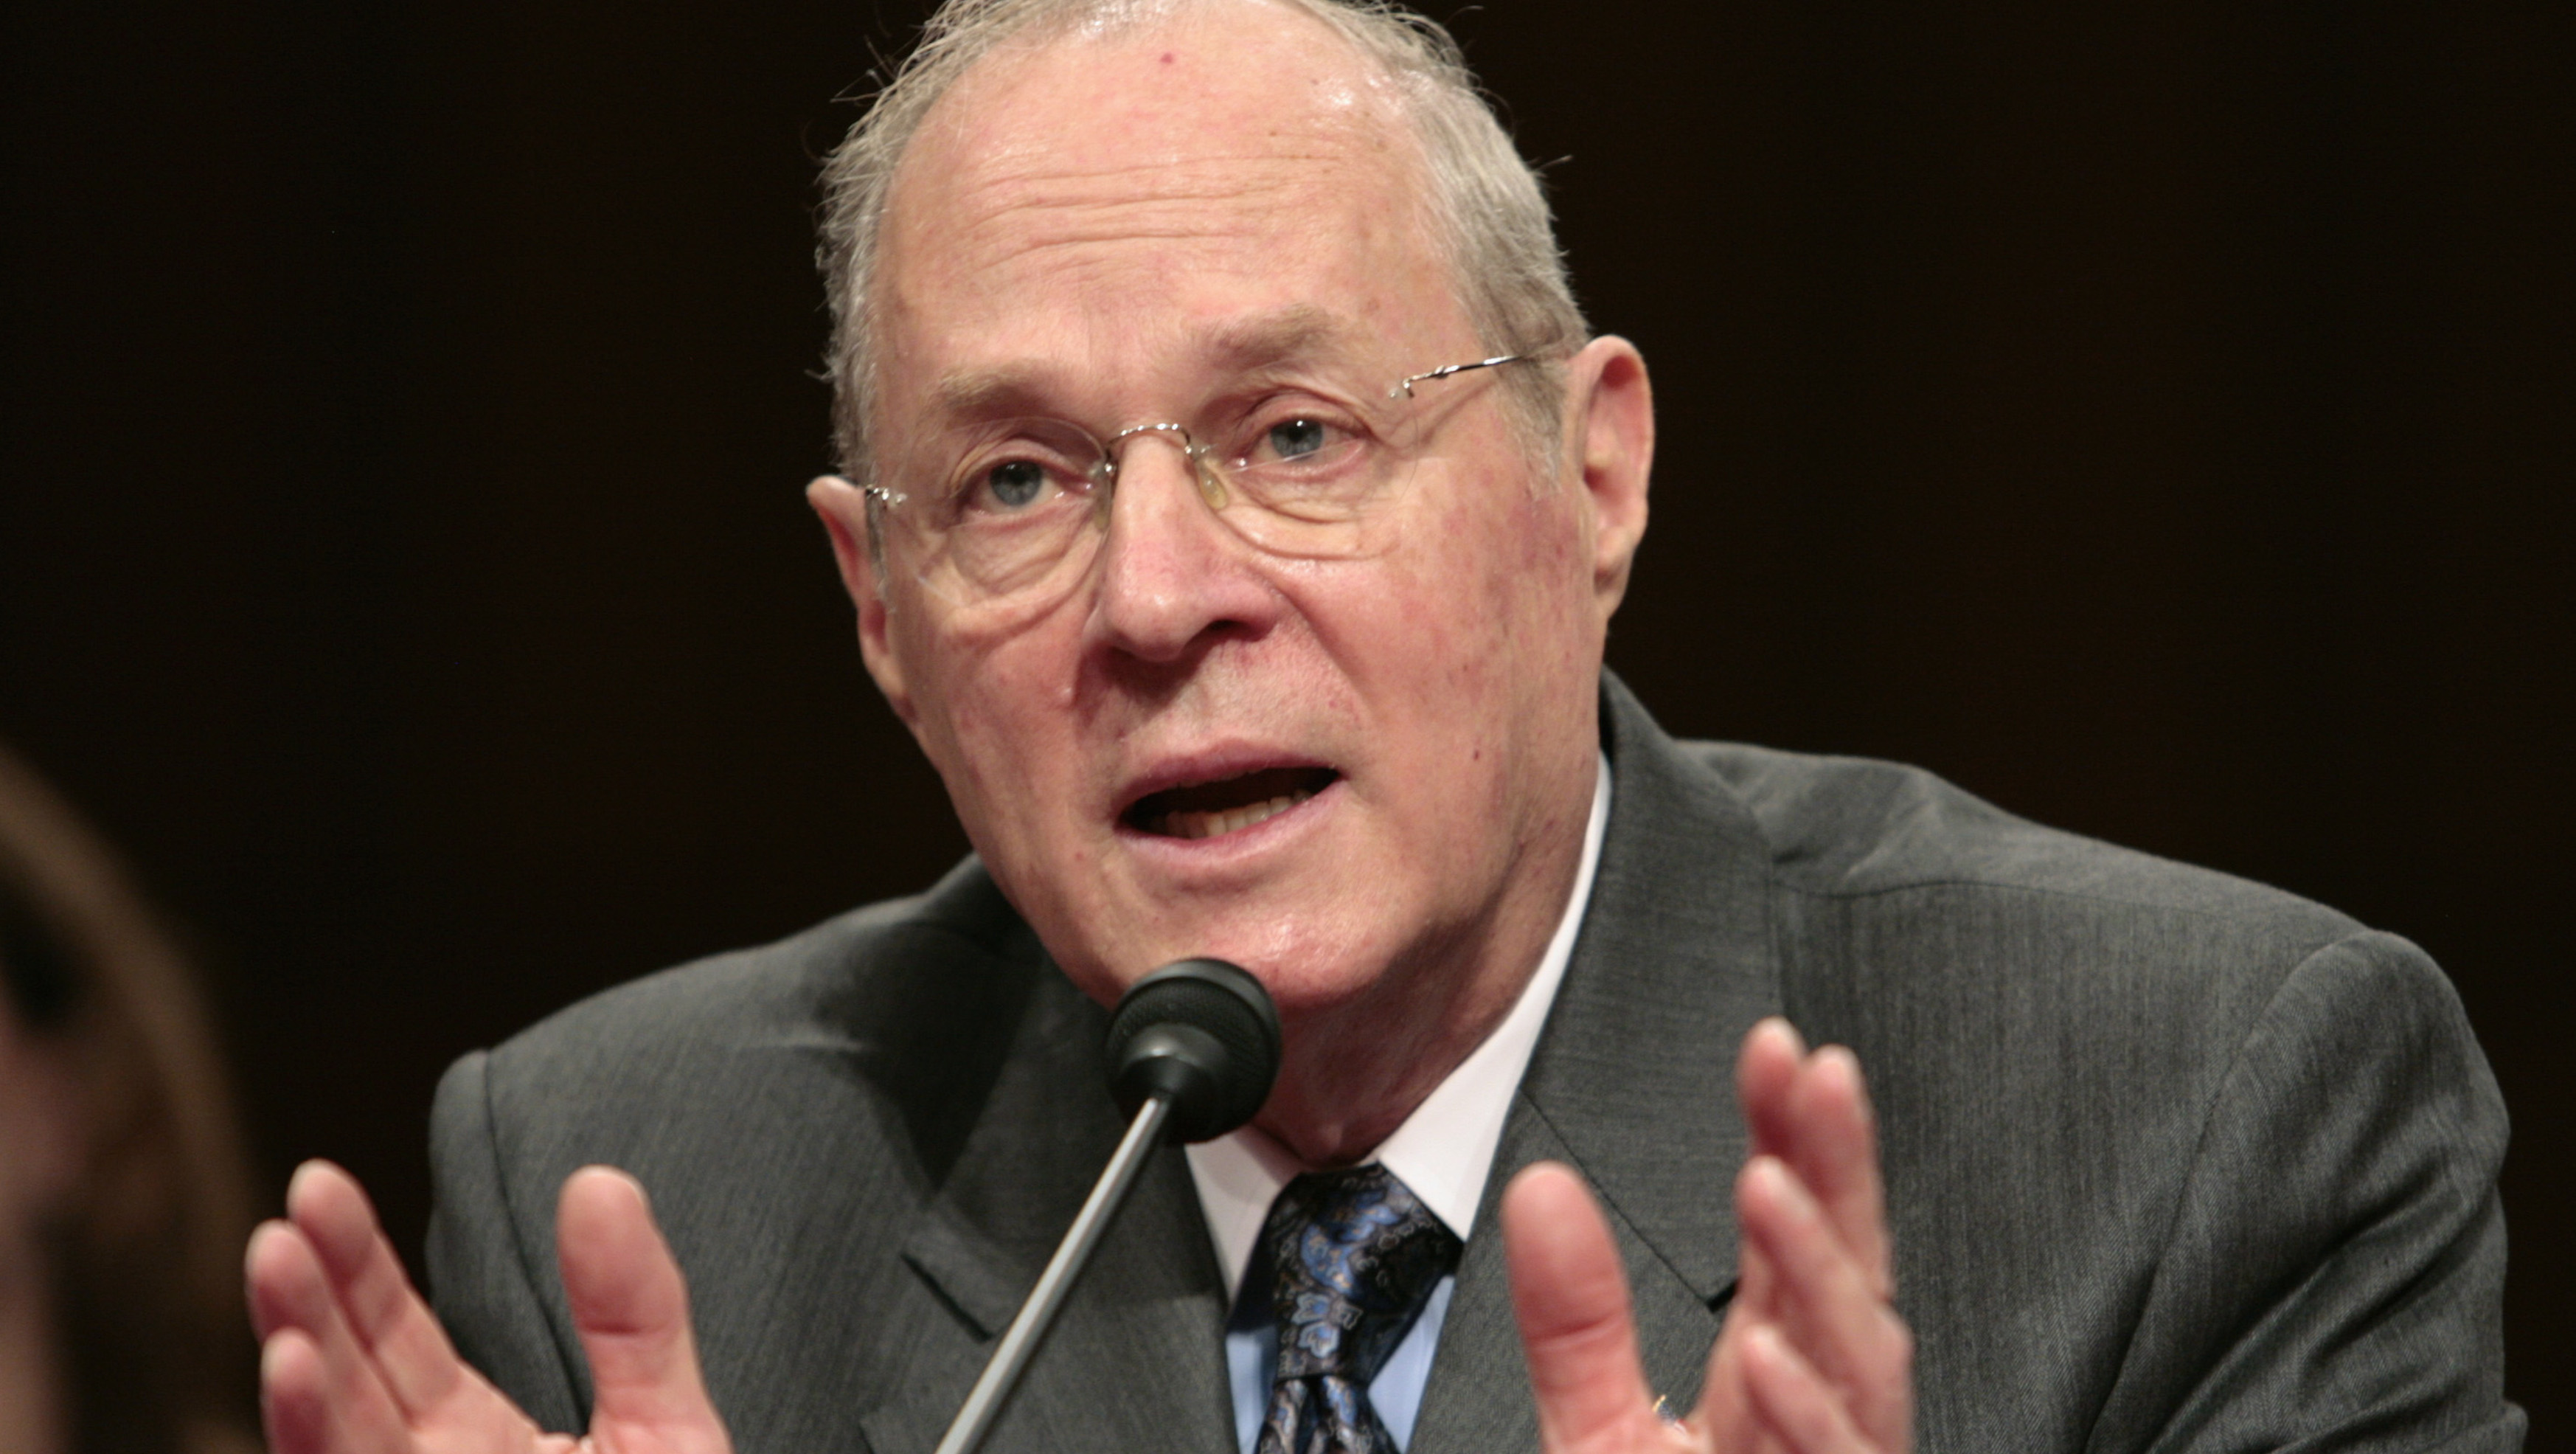 U.S. Supreme Court Justice Kennedy testifies on Capitol Hill in Washington